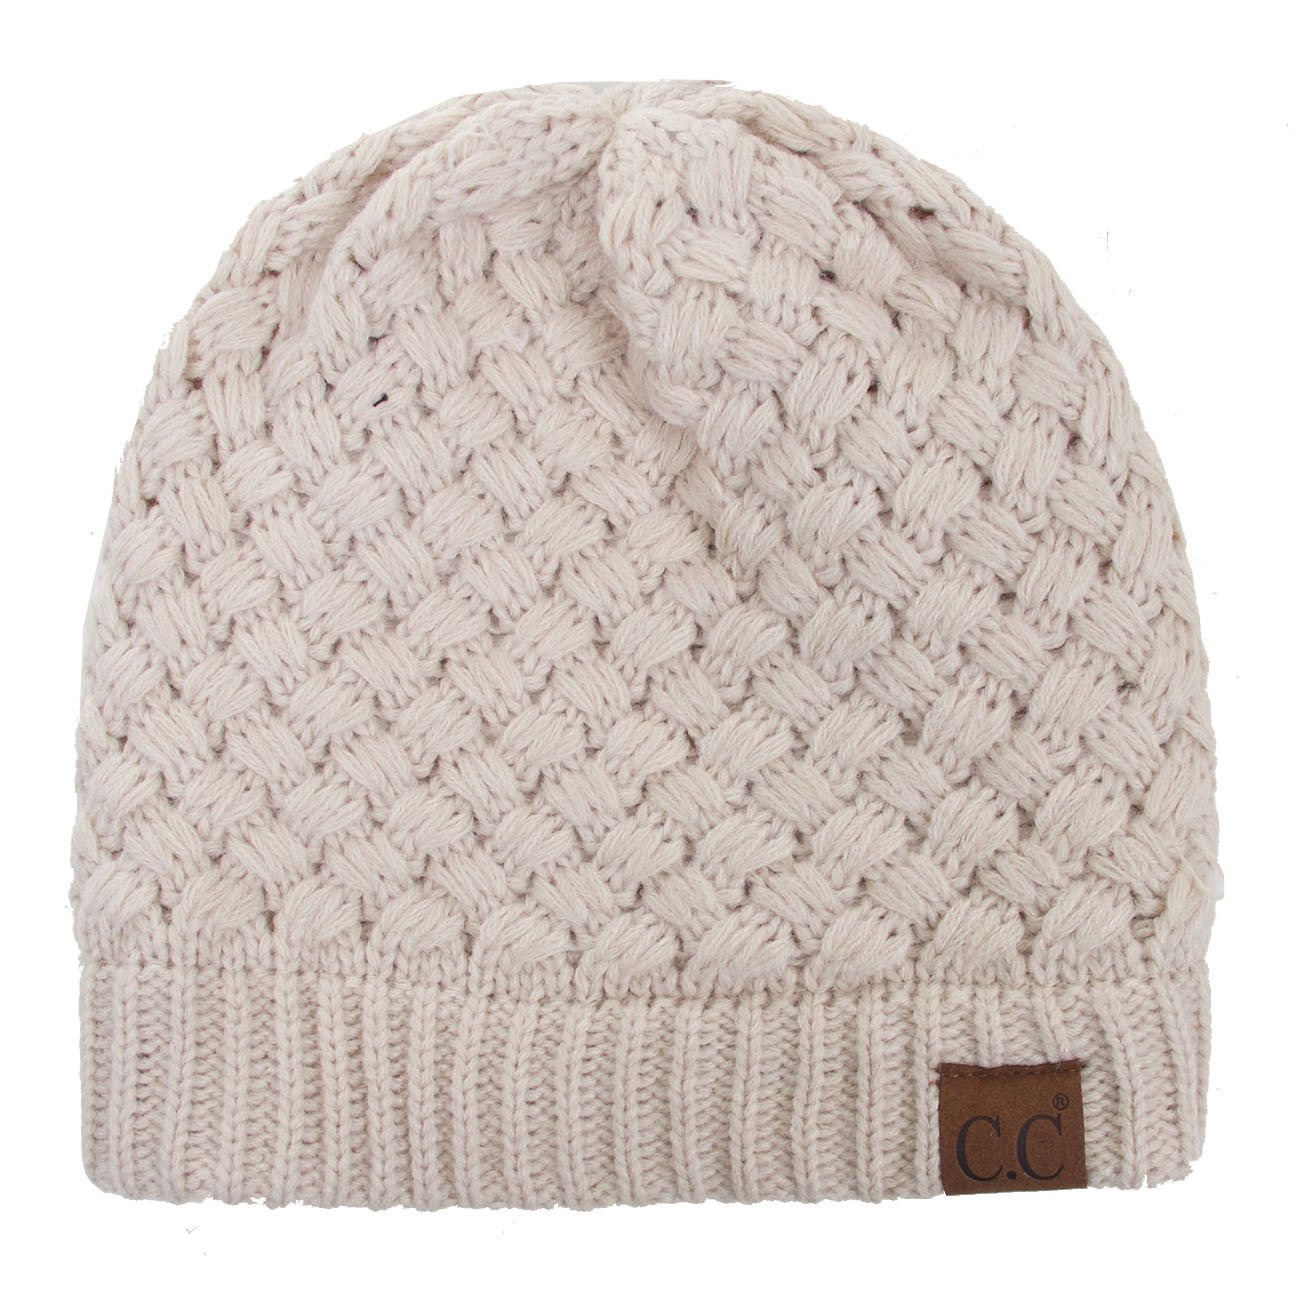 ScarvesMe CC Solid Color Knitted Basket Weaved Pattern Beanie Hat (Beige)